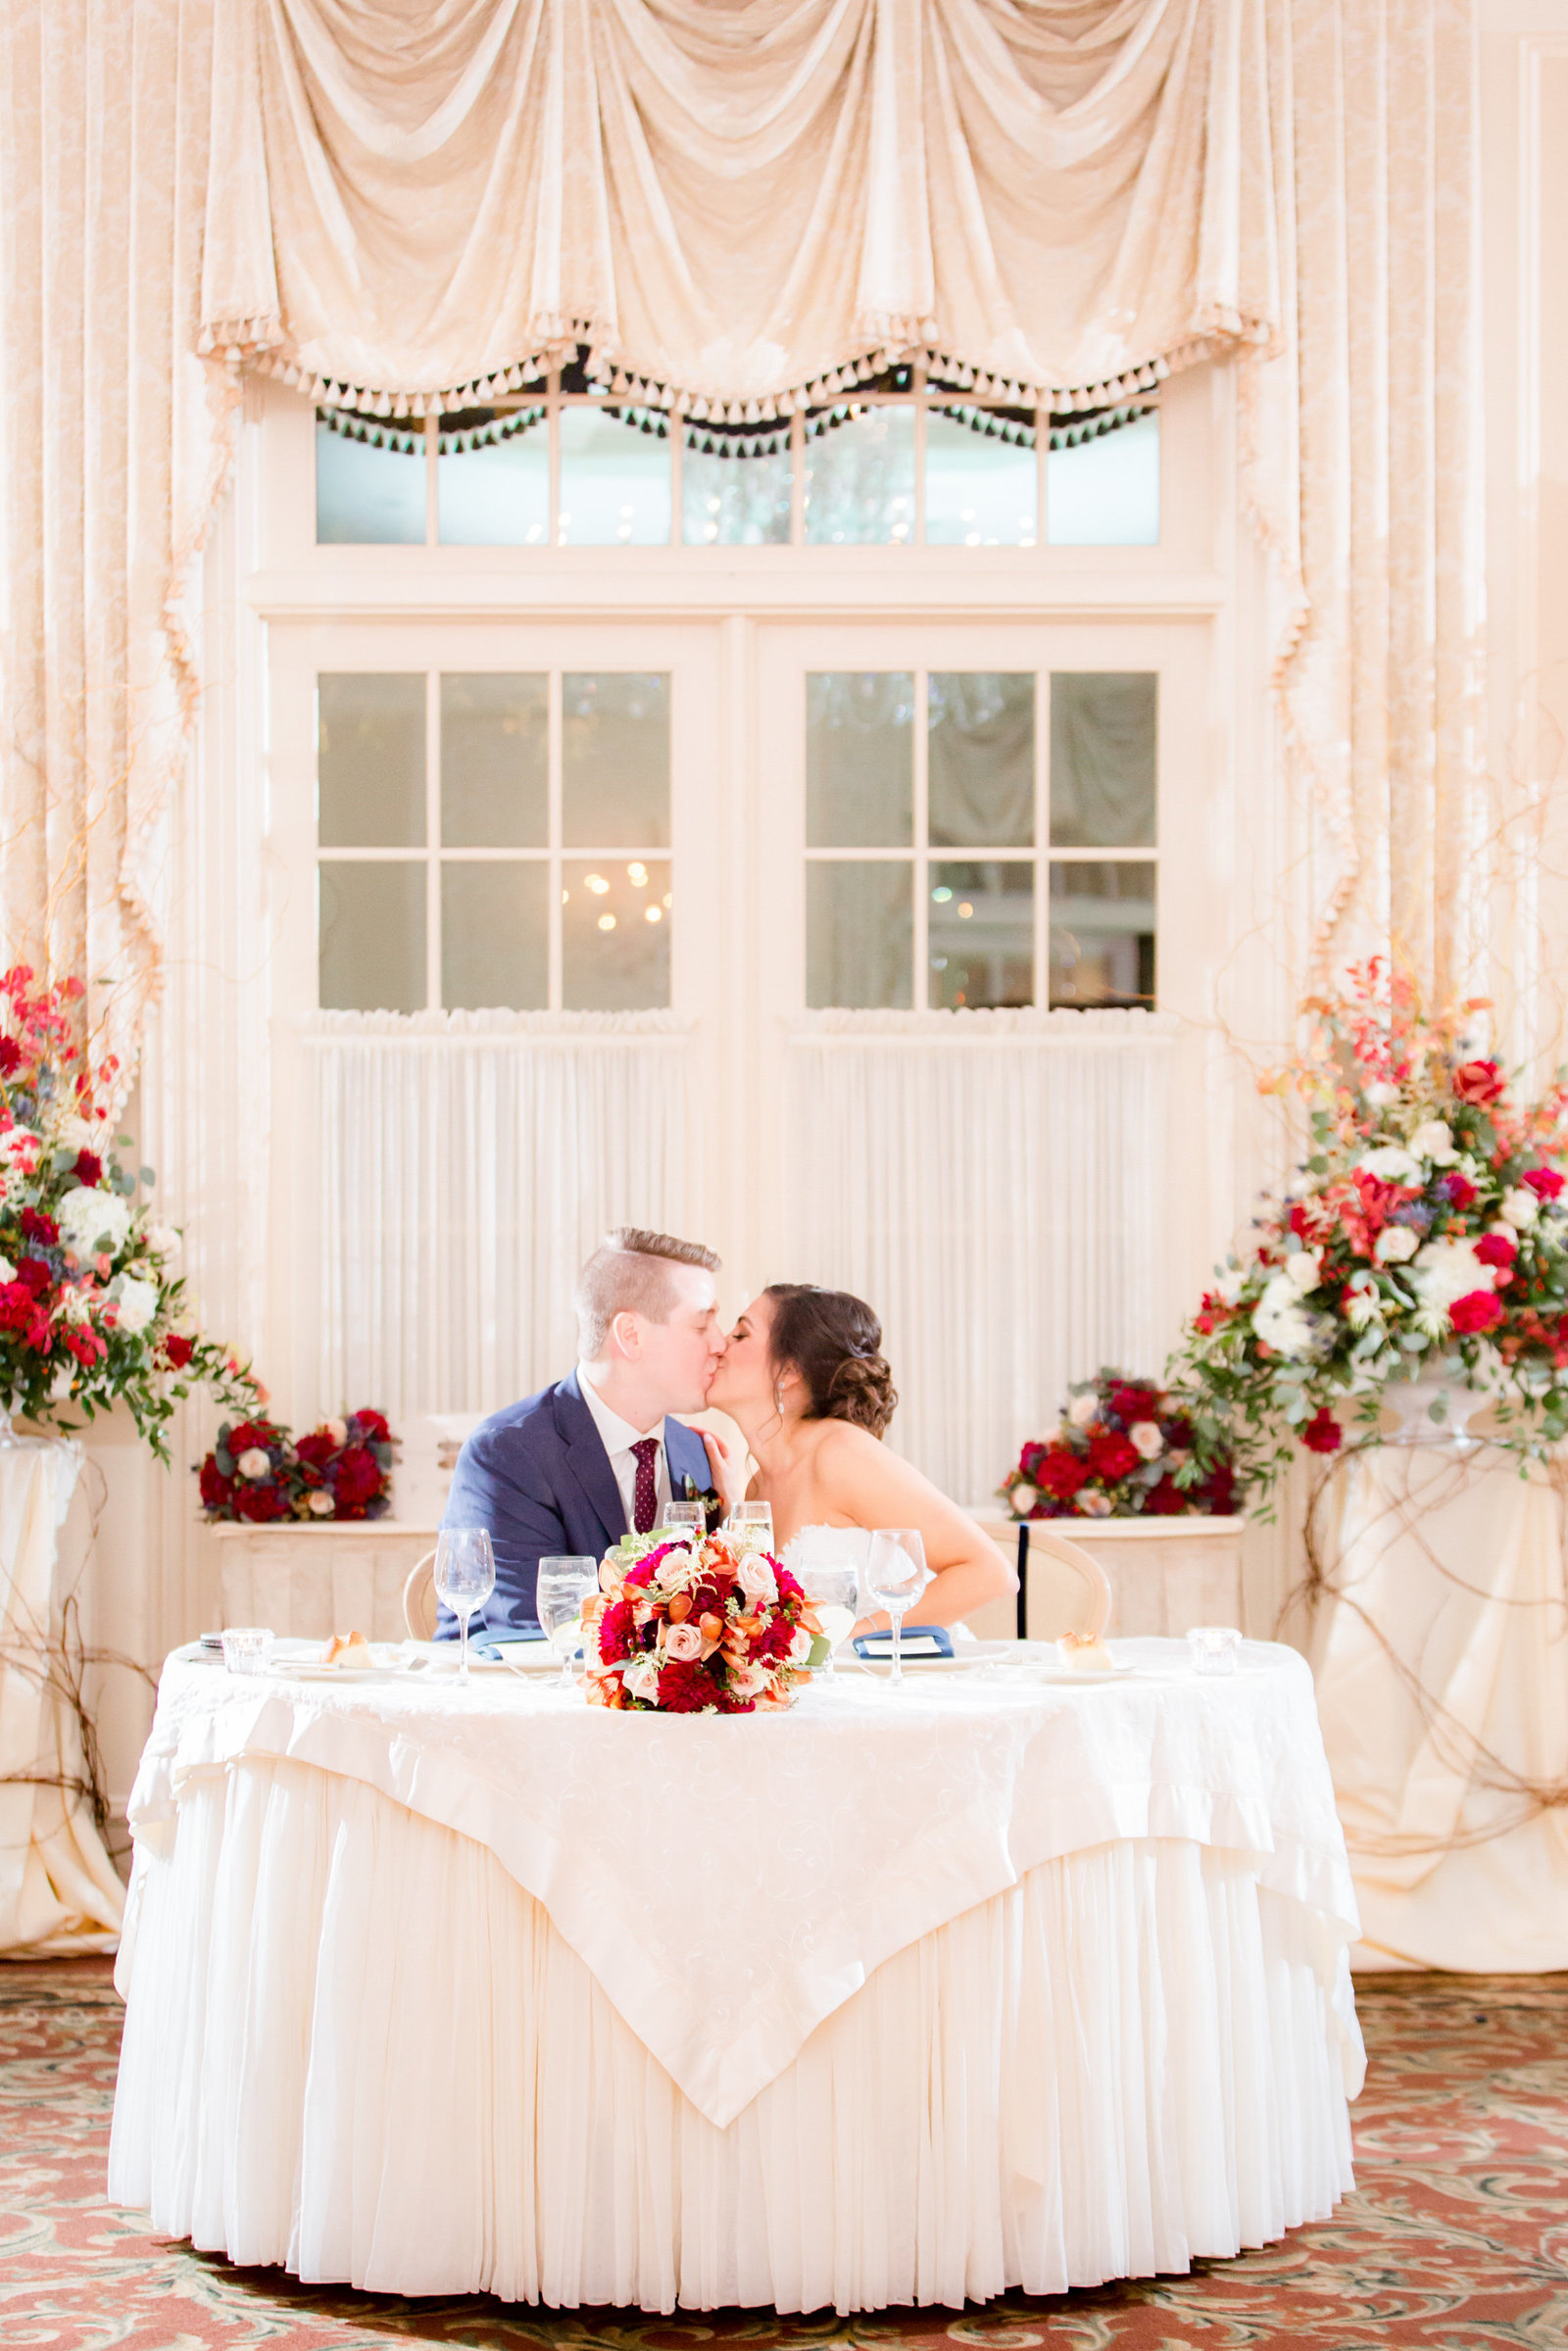 Bride and groom kissing at sweetheart table at Meadow Wood Manor